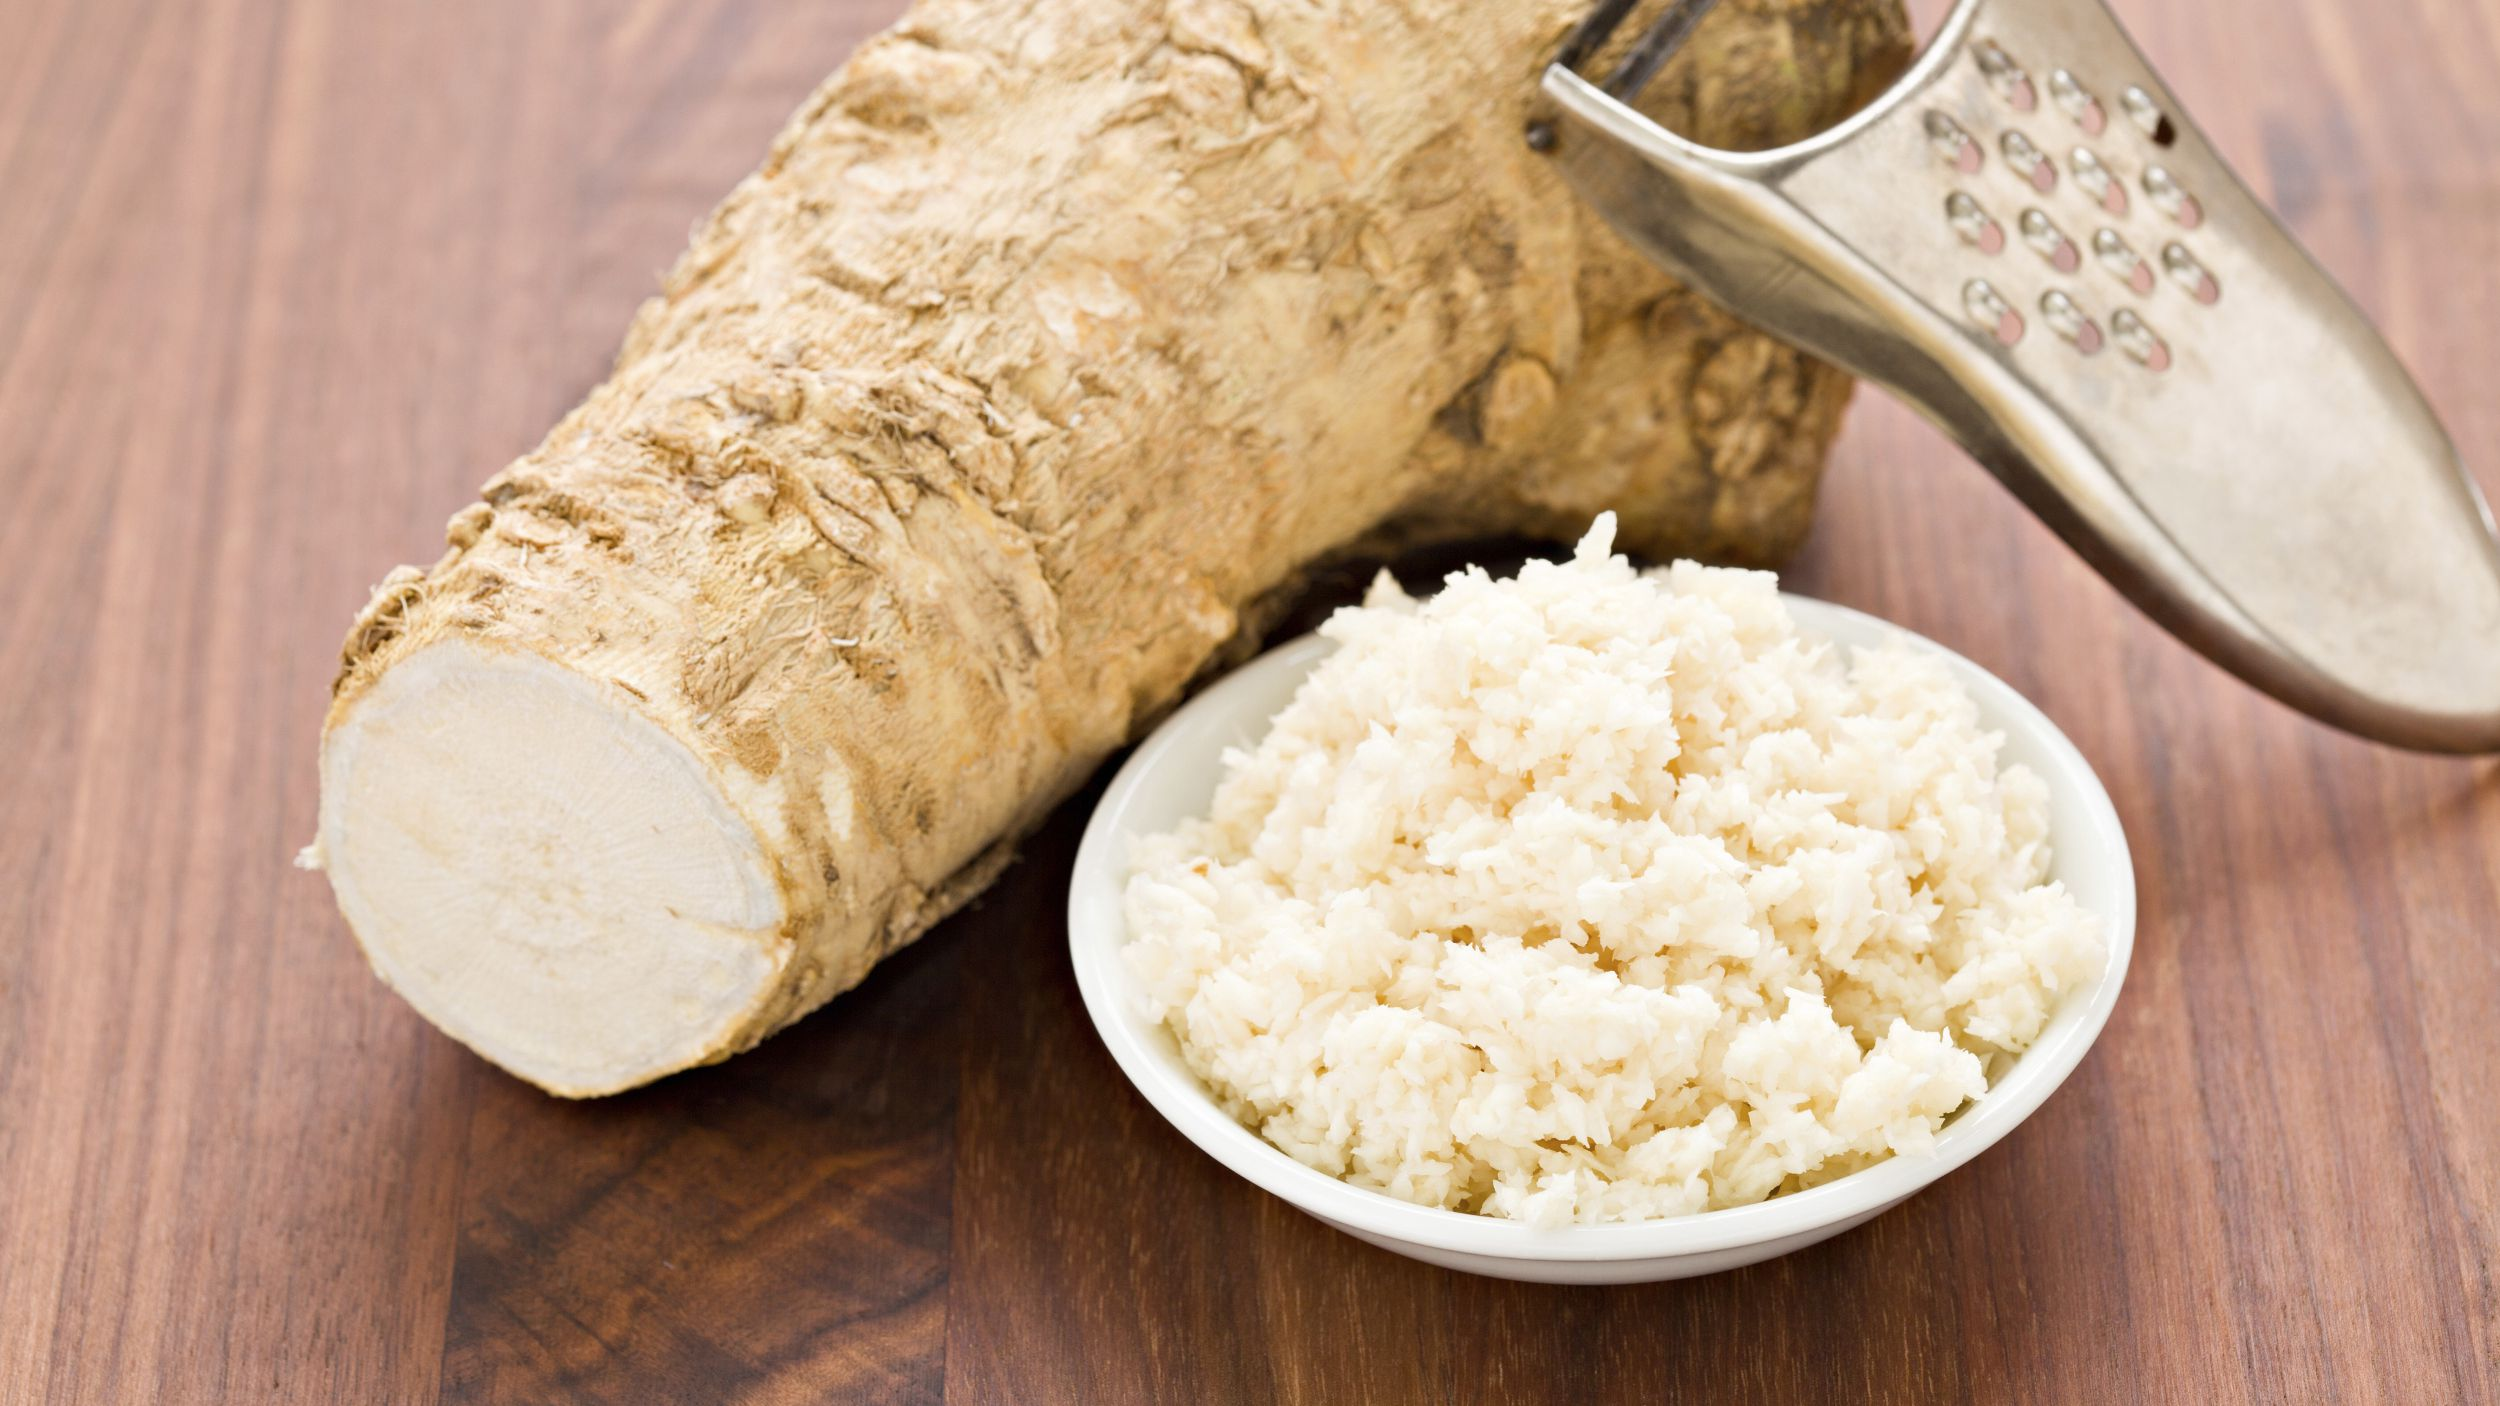 What Is Horseradish And How Is It Used